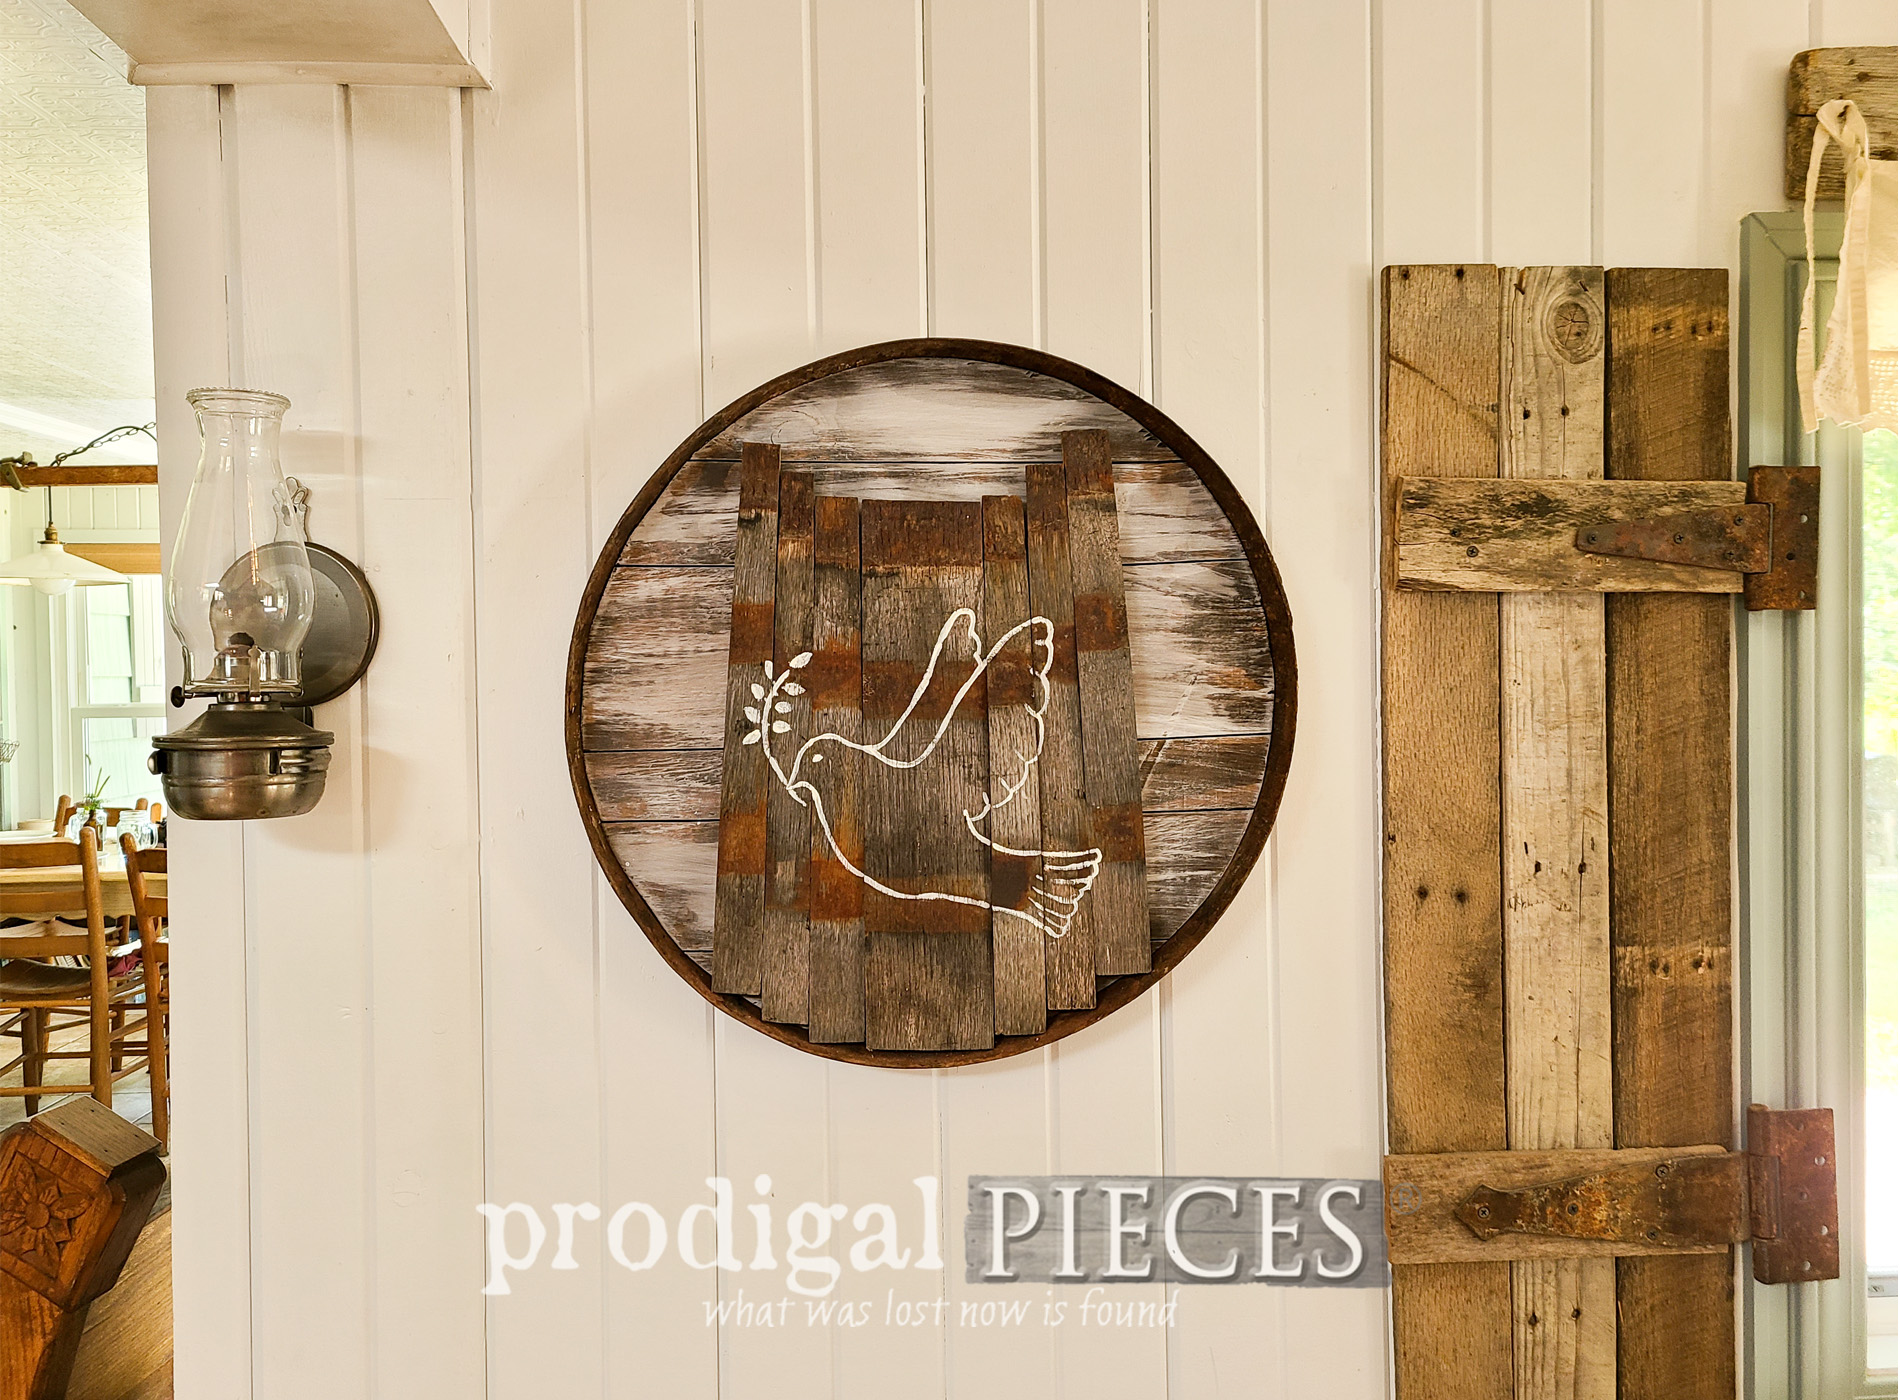 Featured Upcycled Whiskey Barrel into Home Decor by Larissa of Prodigal Pieces | prodigalpieces.com #prodigalpieces #reclaimed #diy #home #farmhouse #homedecor